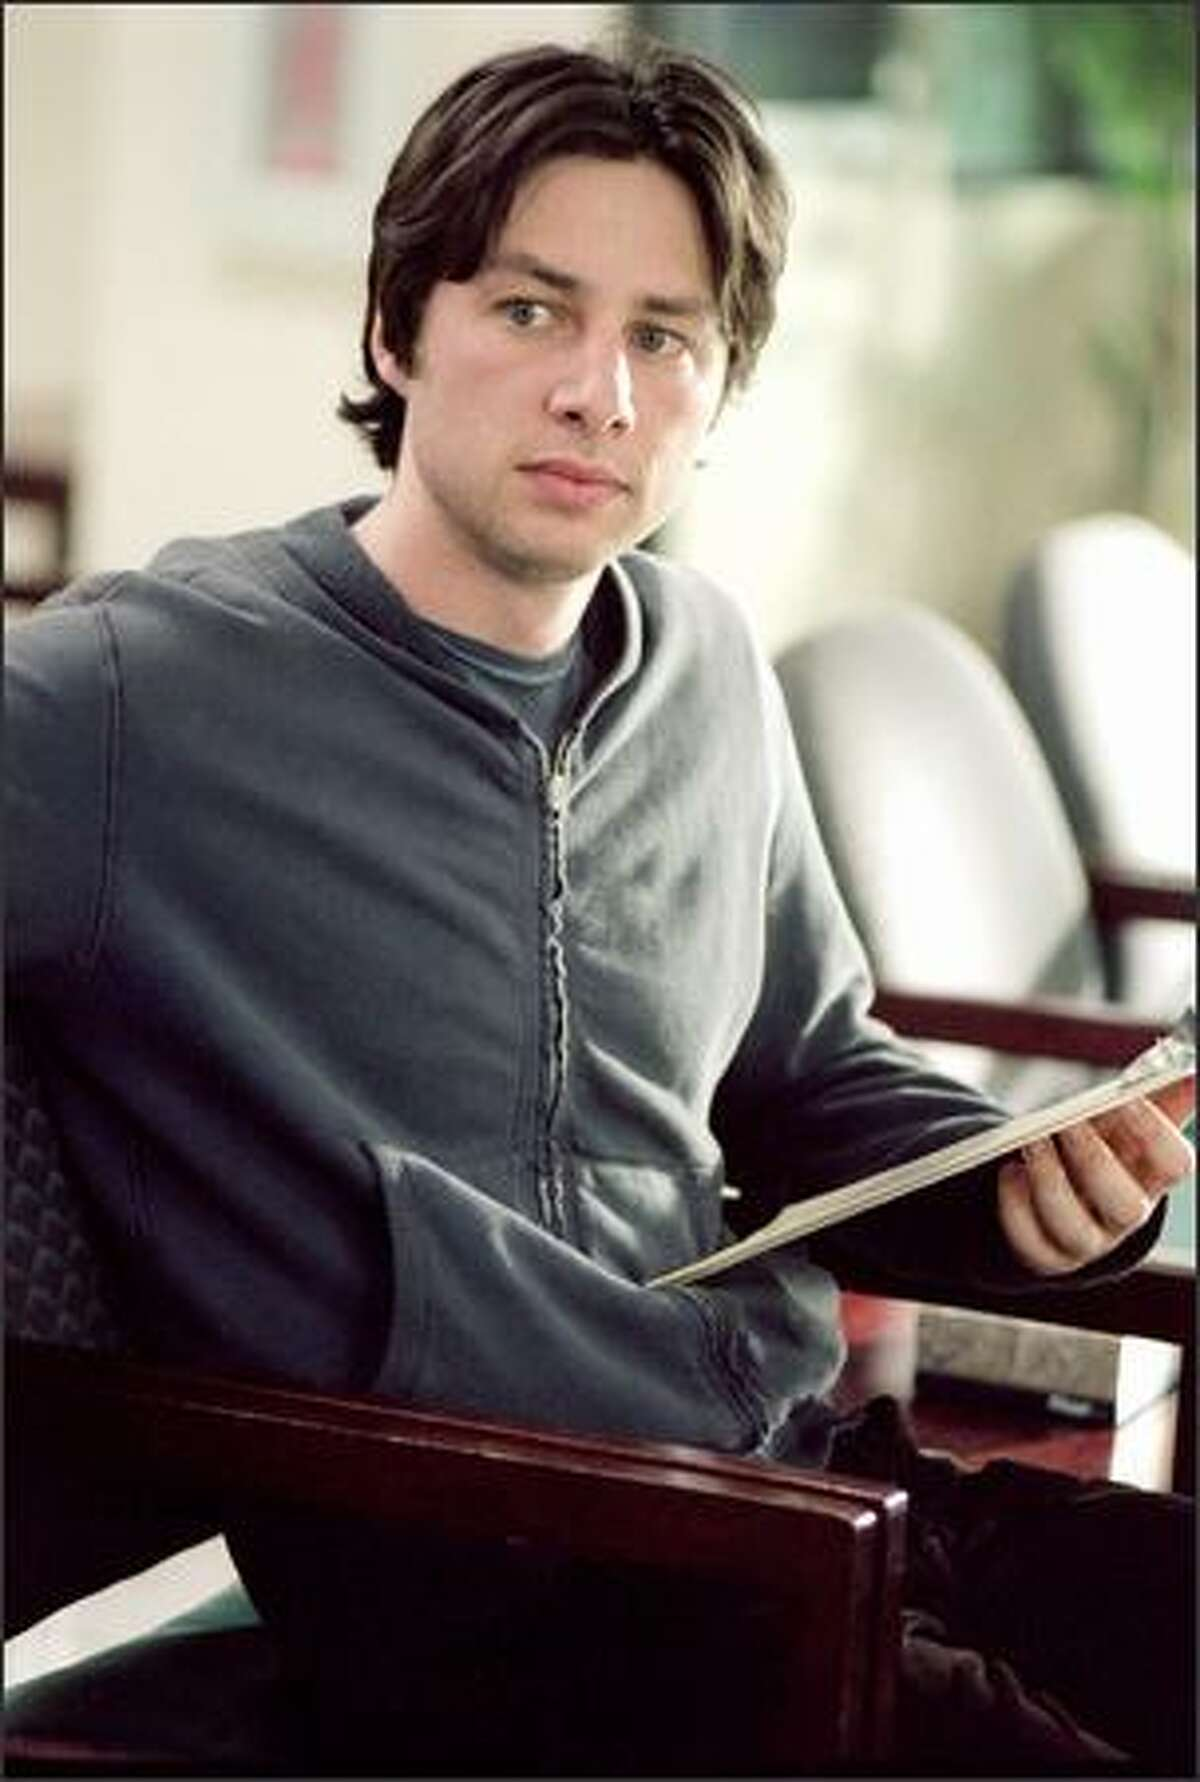 Writer/director/actor Zach Braff makes his feature-writing and directorial debuts with